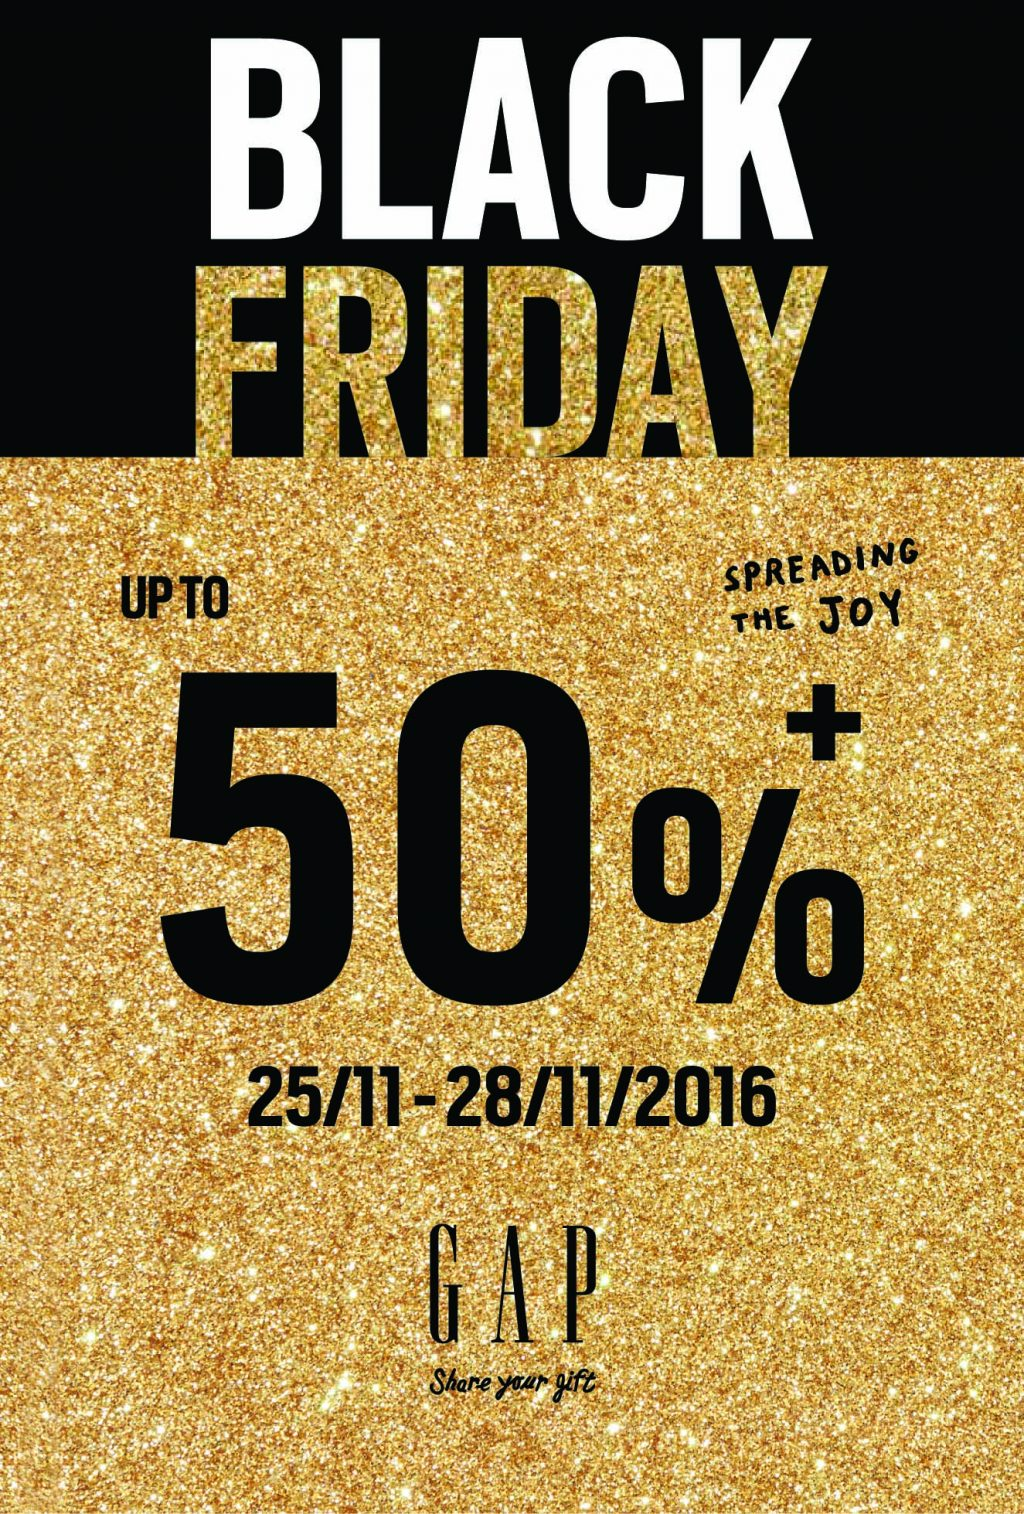 ACFC-Black Friday Sale - 03